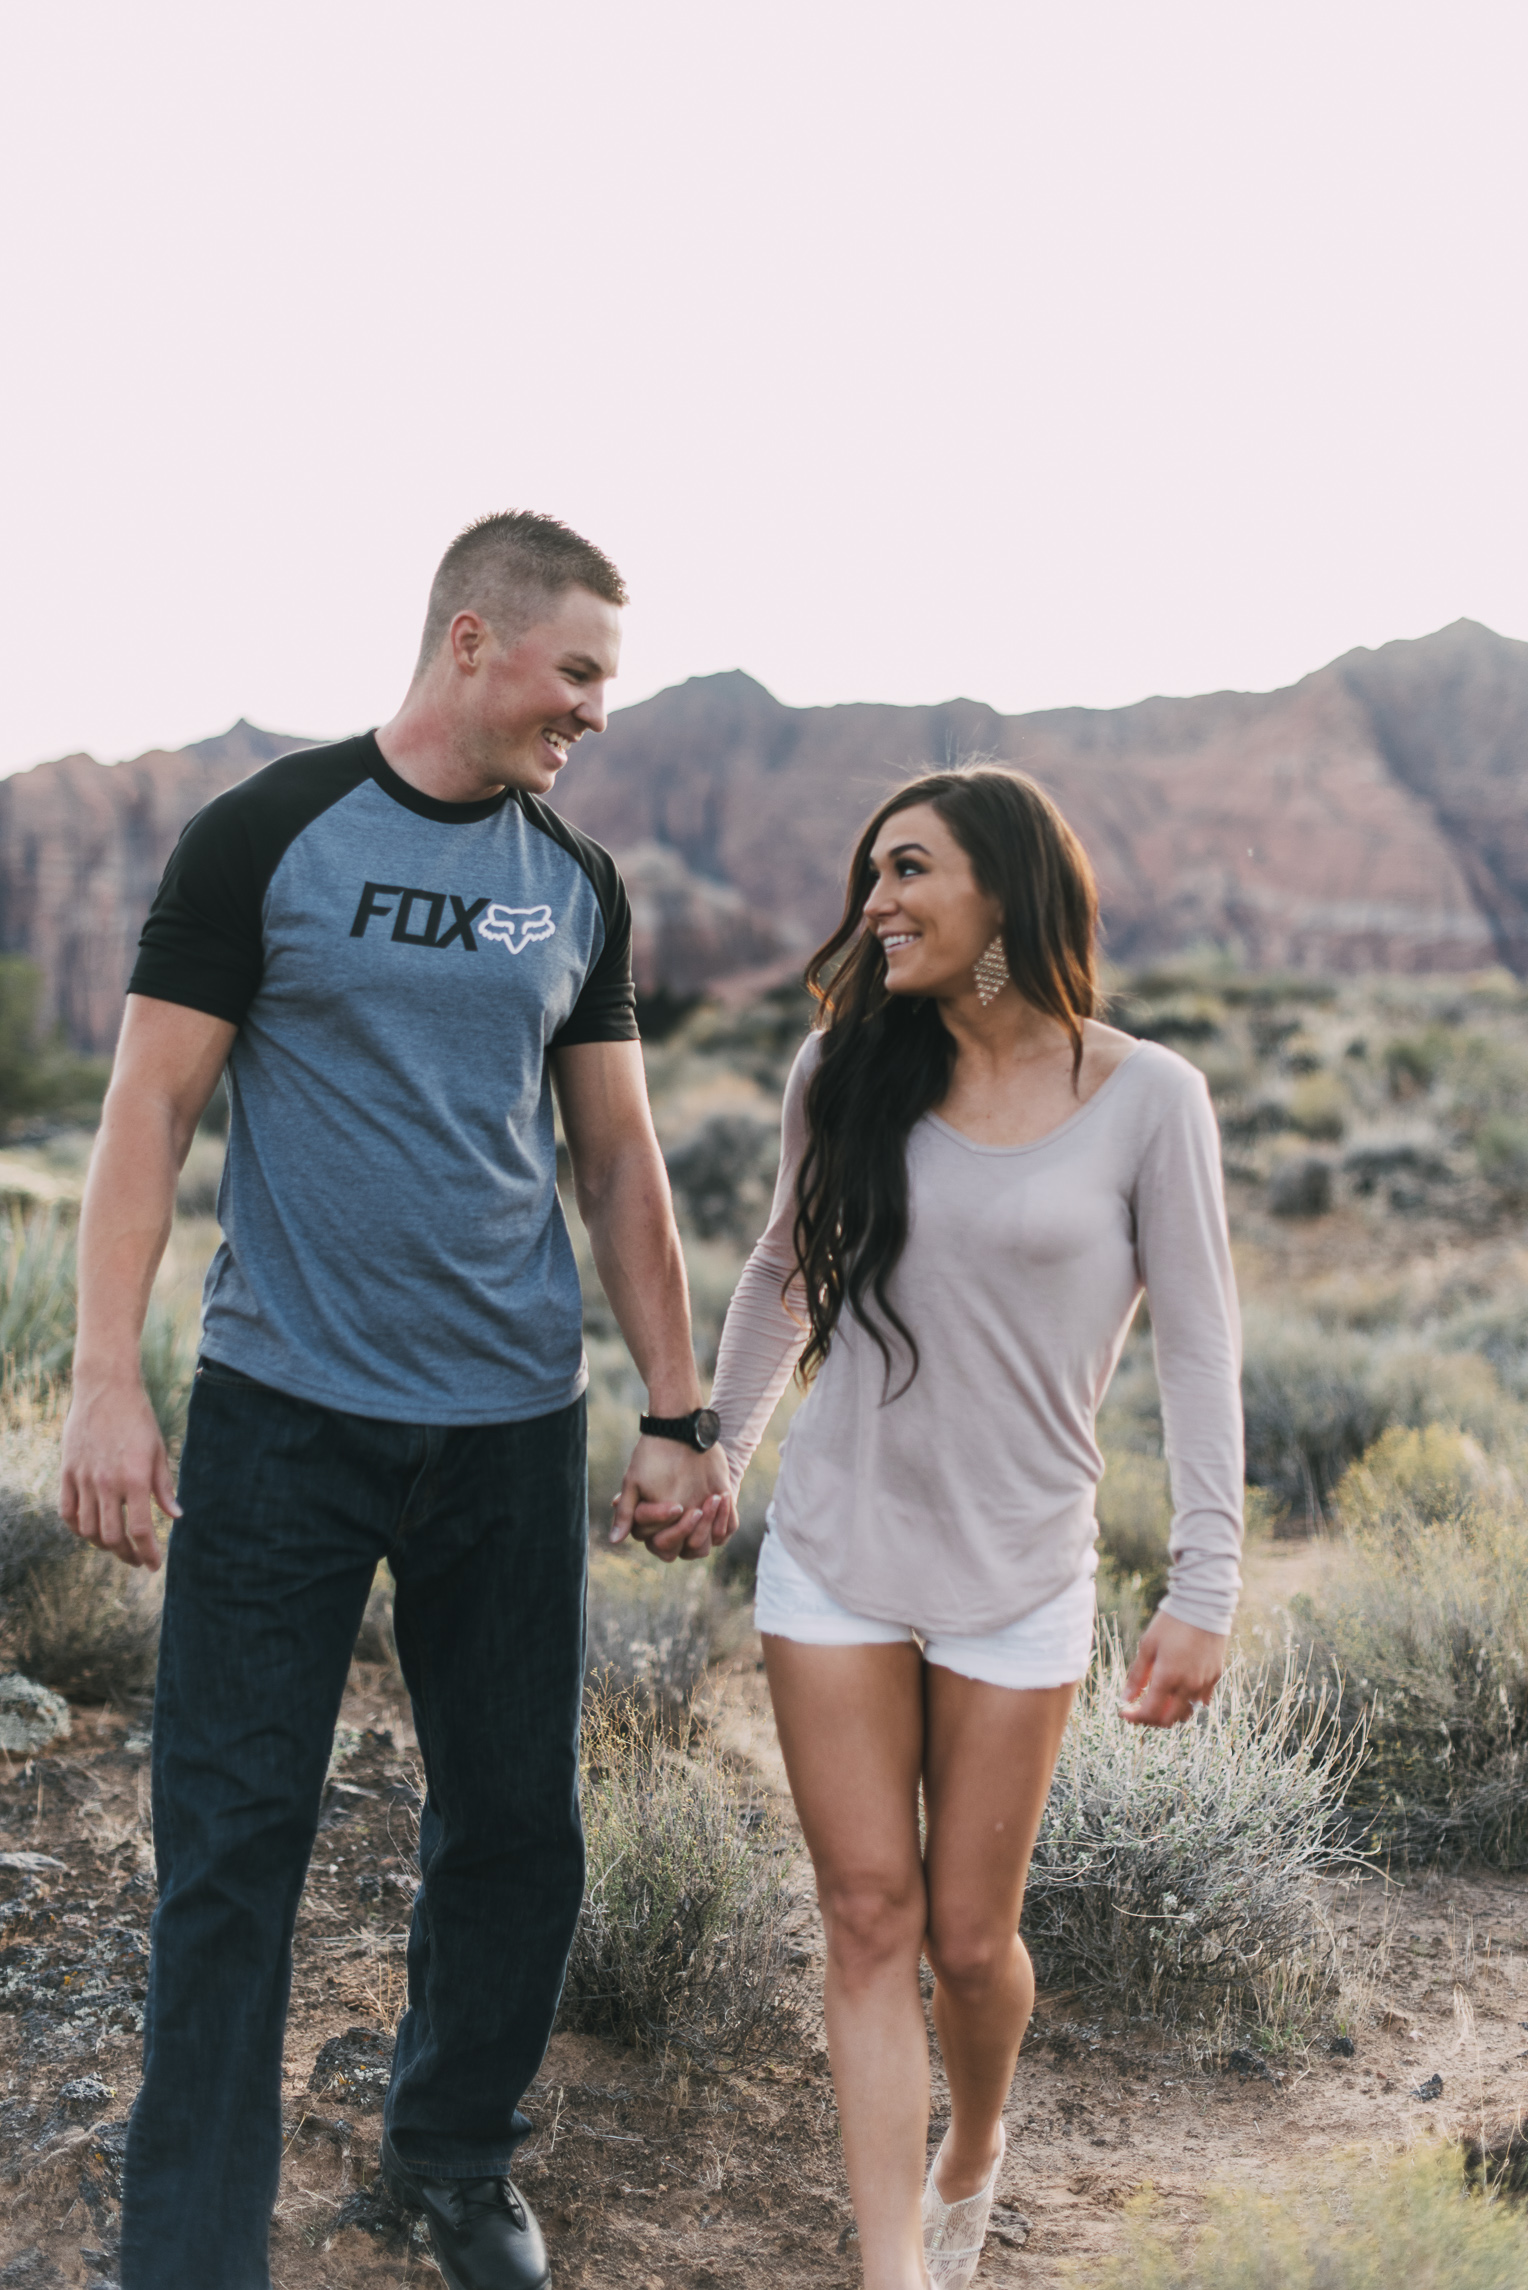 050416KELSEY & RUSTIN ENGAGEMENTS - ST. GEORGE LAS VEGAS PHOTOGRAPHER - DEBI RAE PHOTOGRAPHY-28.jpg